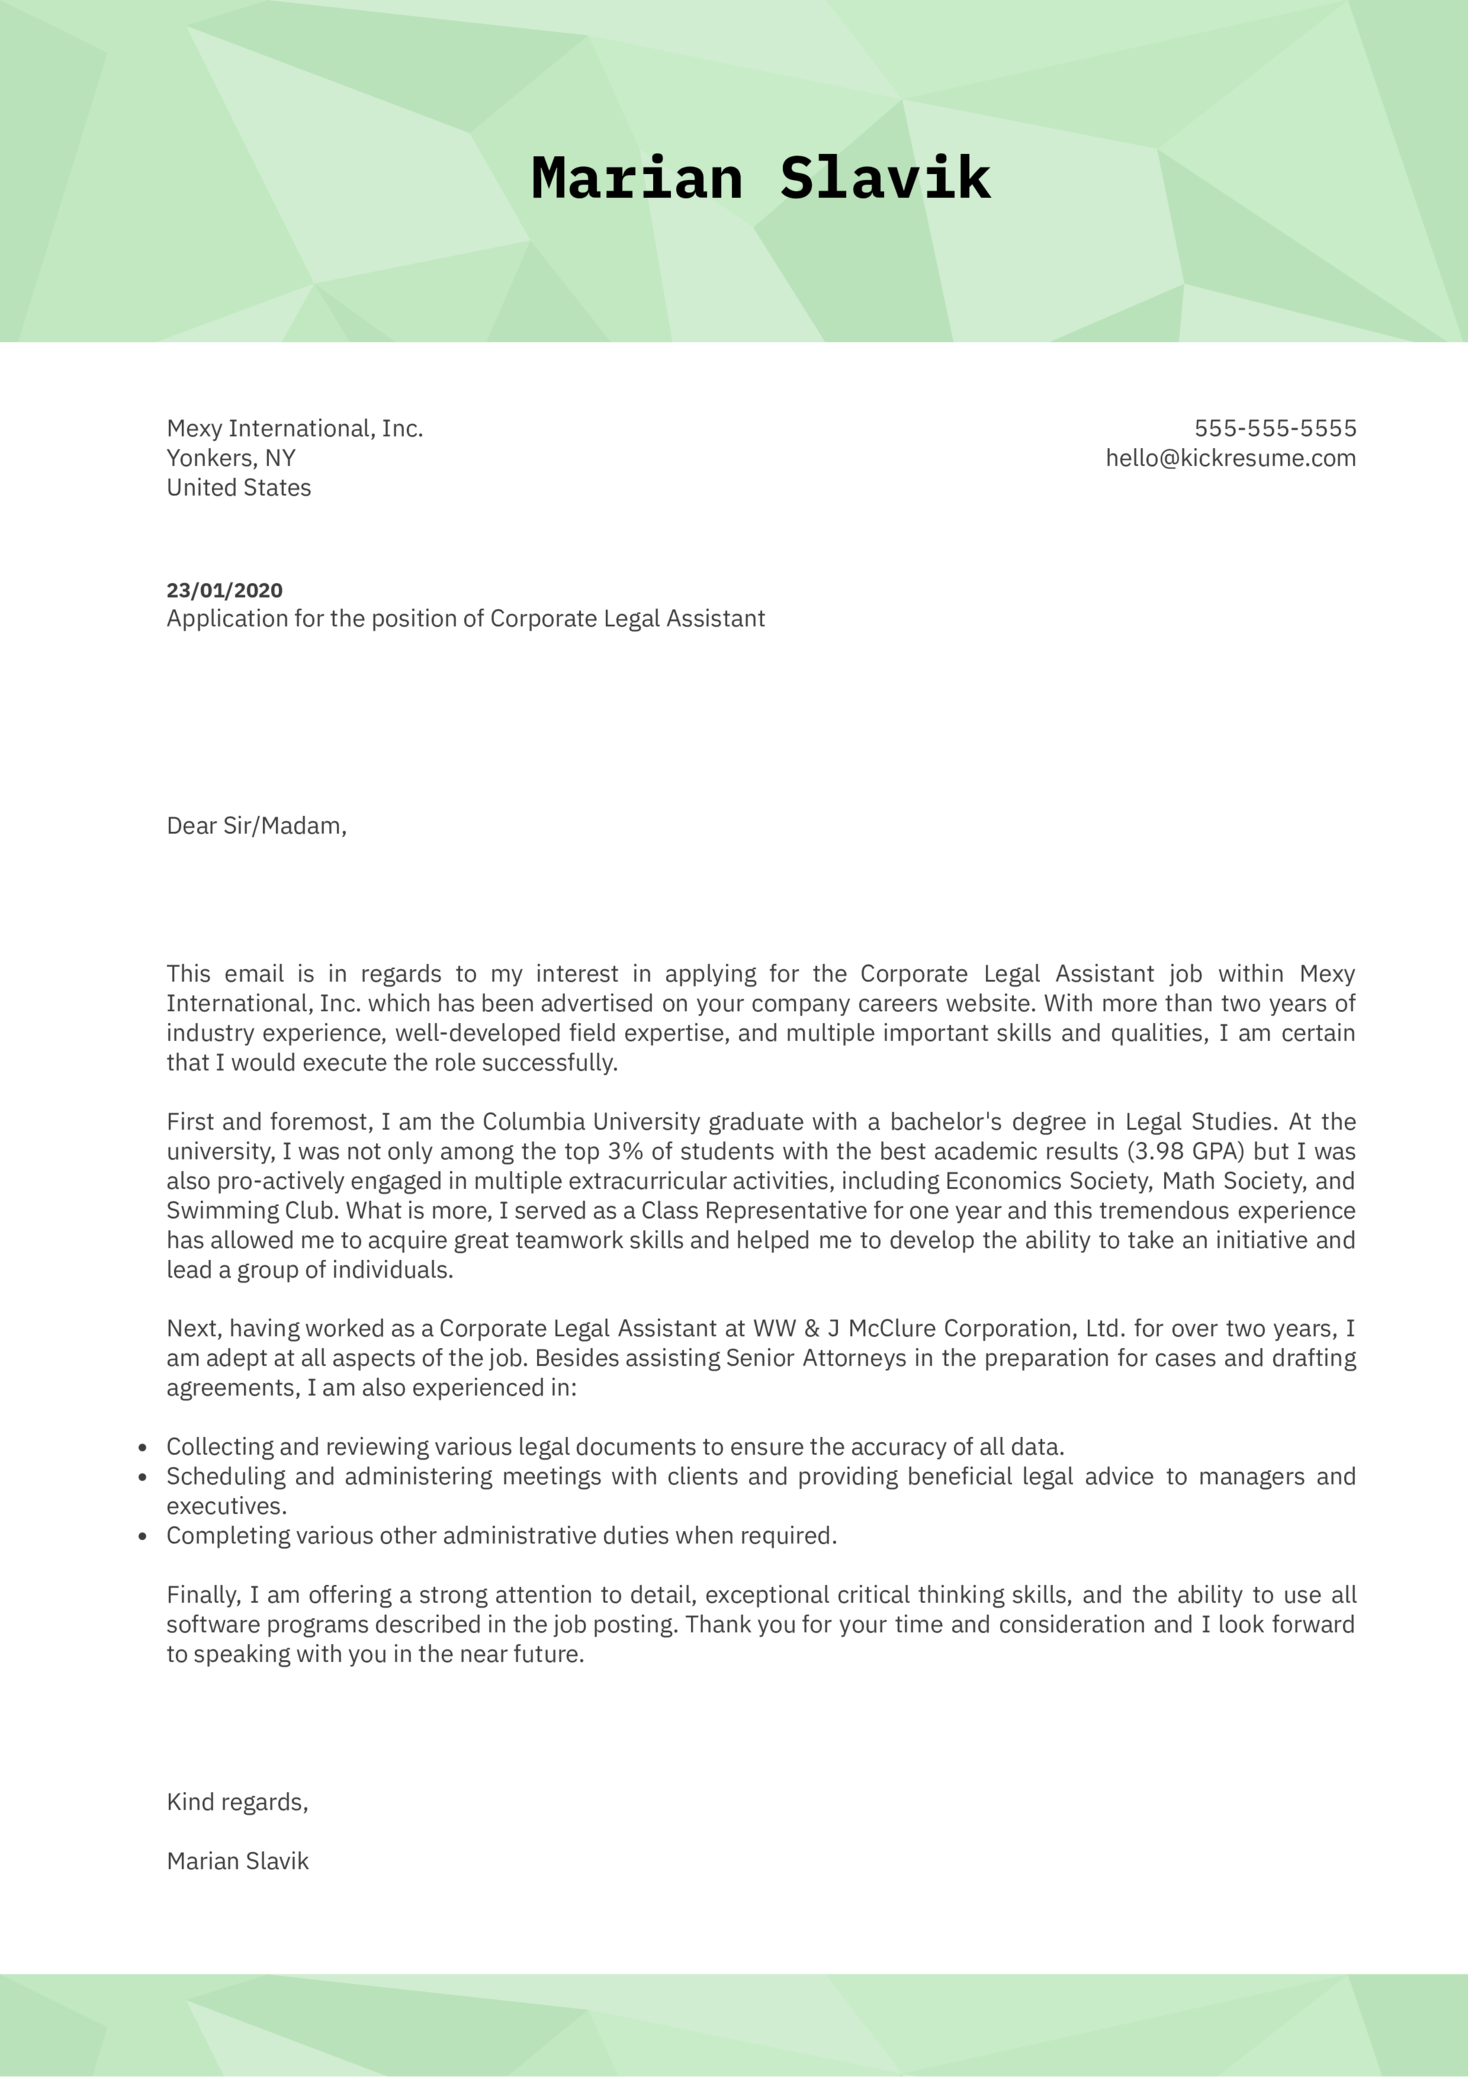 Sample Cover Letter For Lawyer from s3-eu-west-1.amazonaws.com